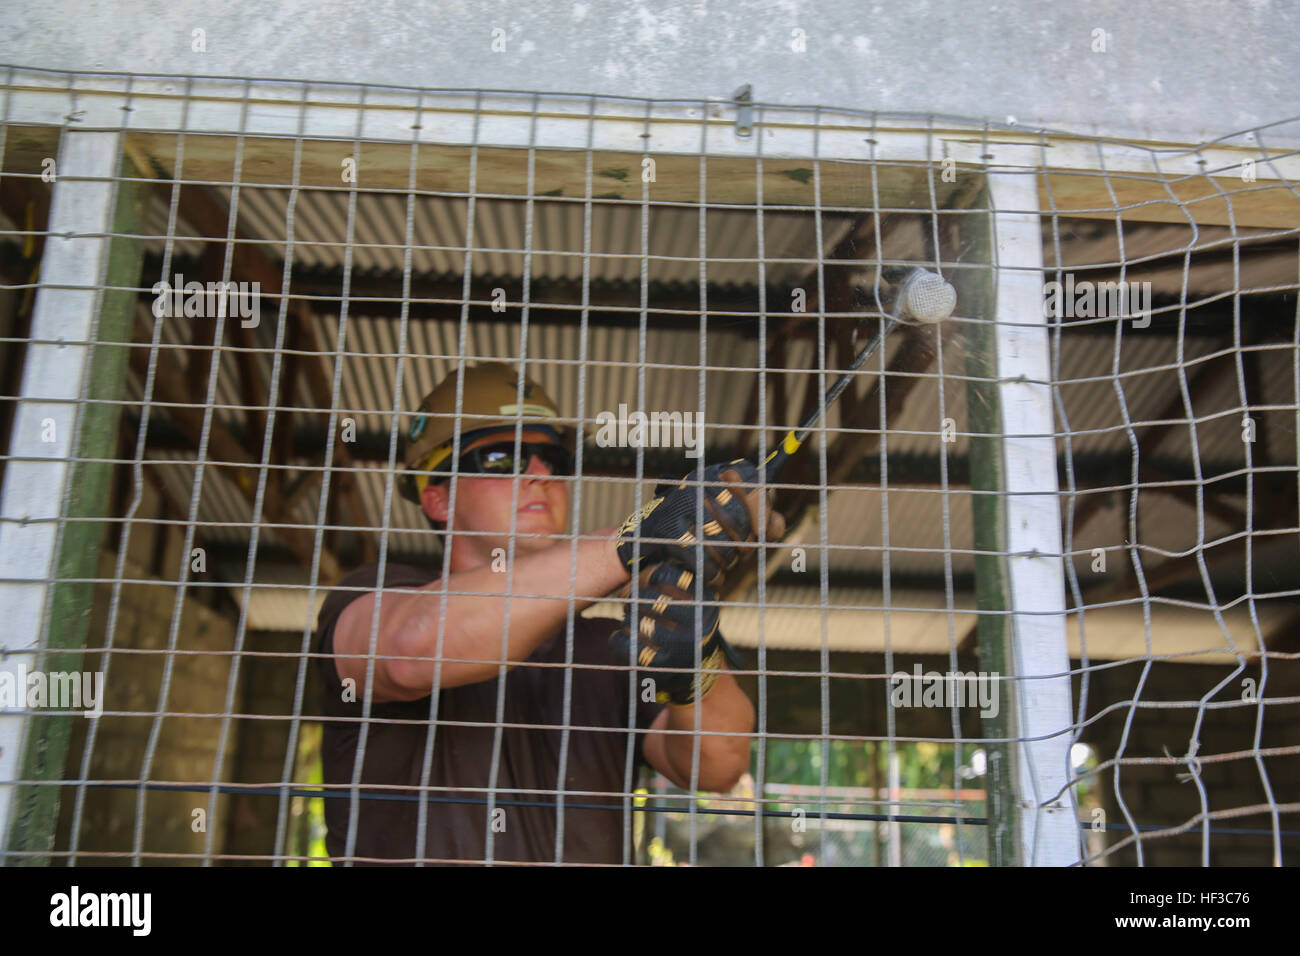 KIRABATI (June 3, 2015) – Steelworker 3rd Class Jonathon Walsh removes wire as part of a construction project to - Stock Image